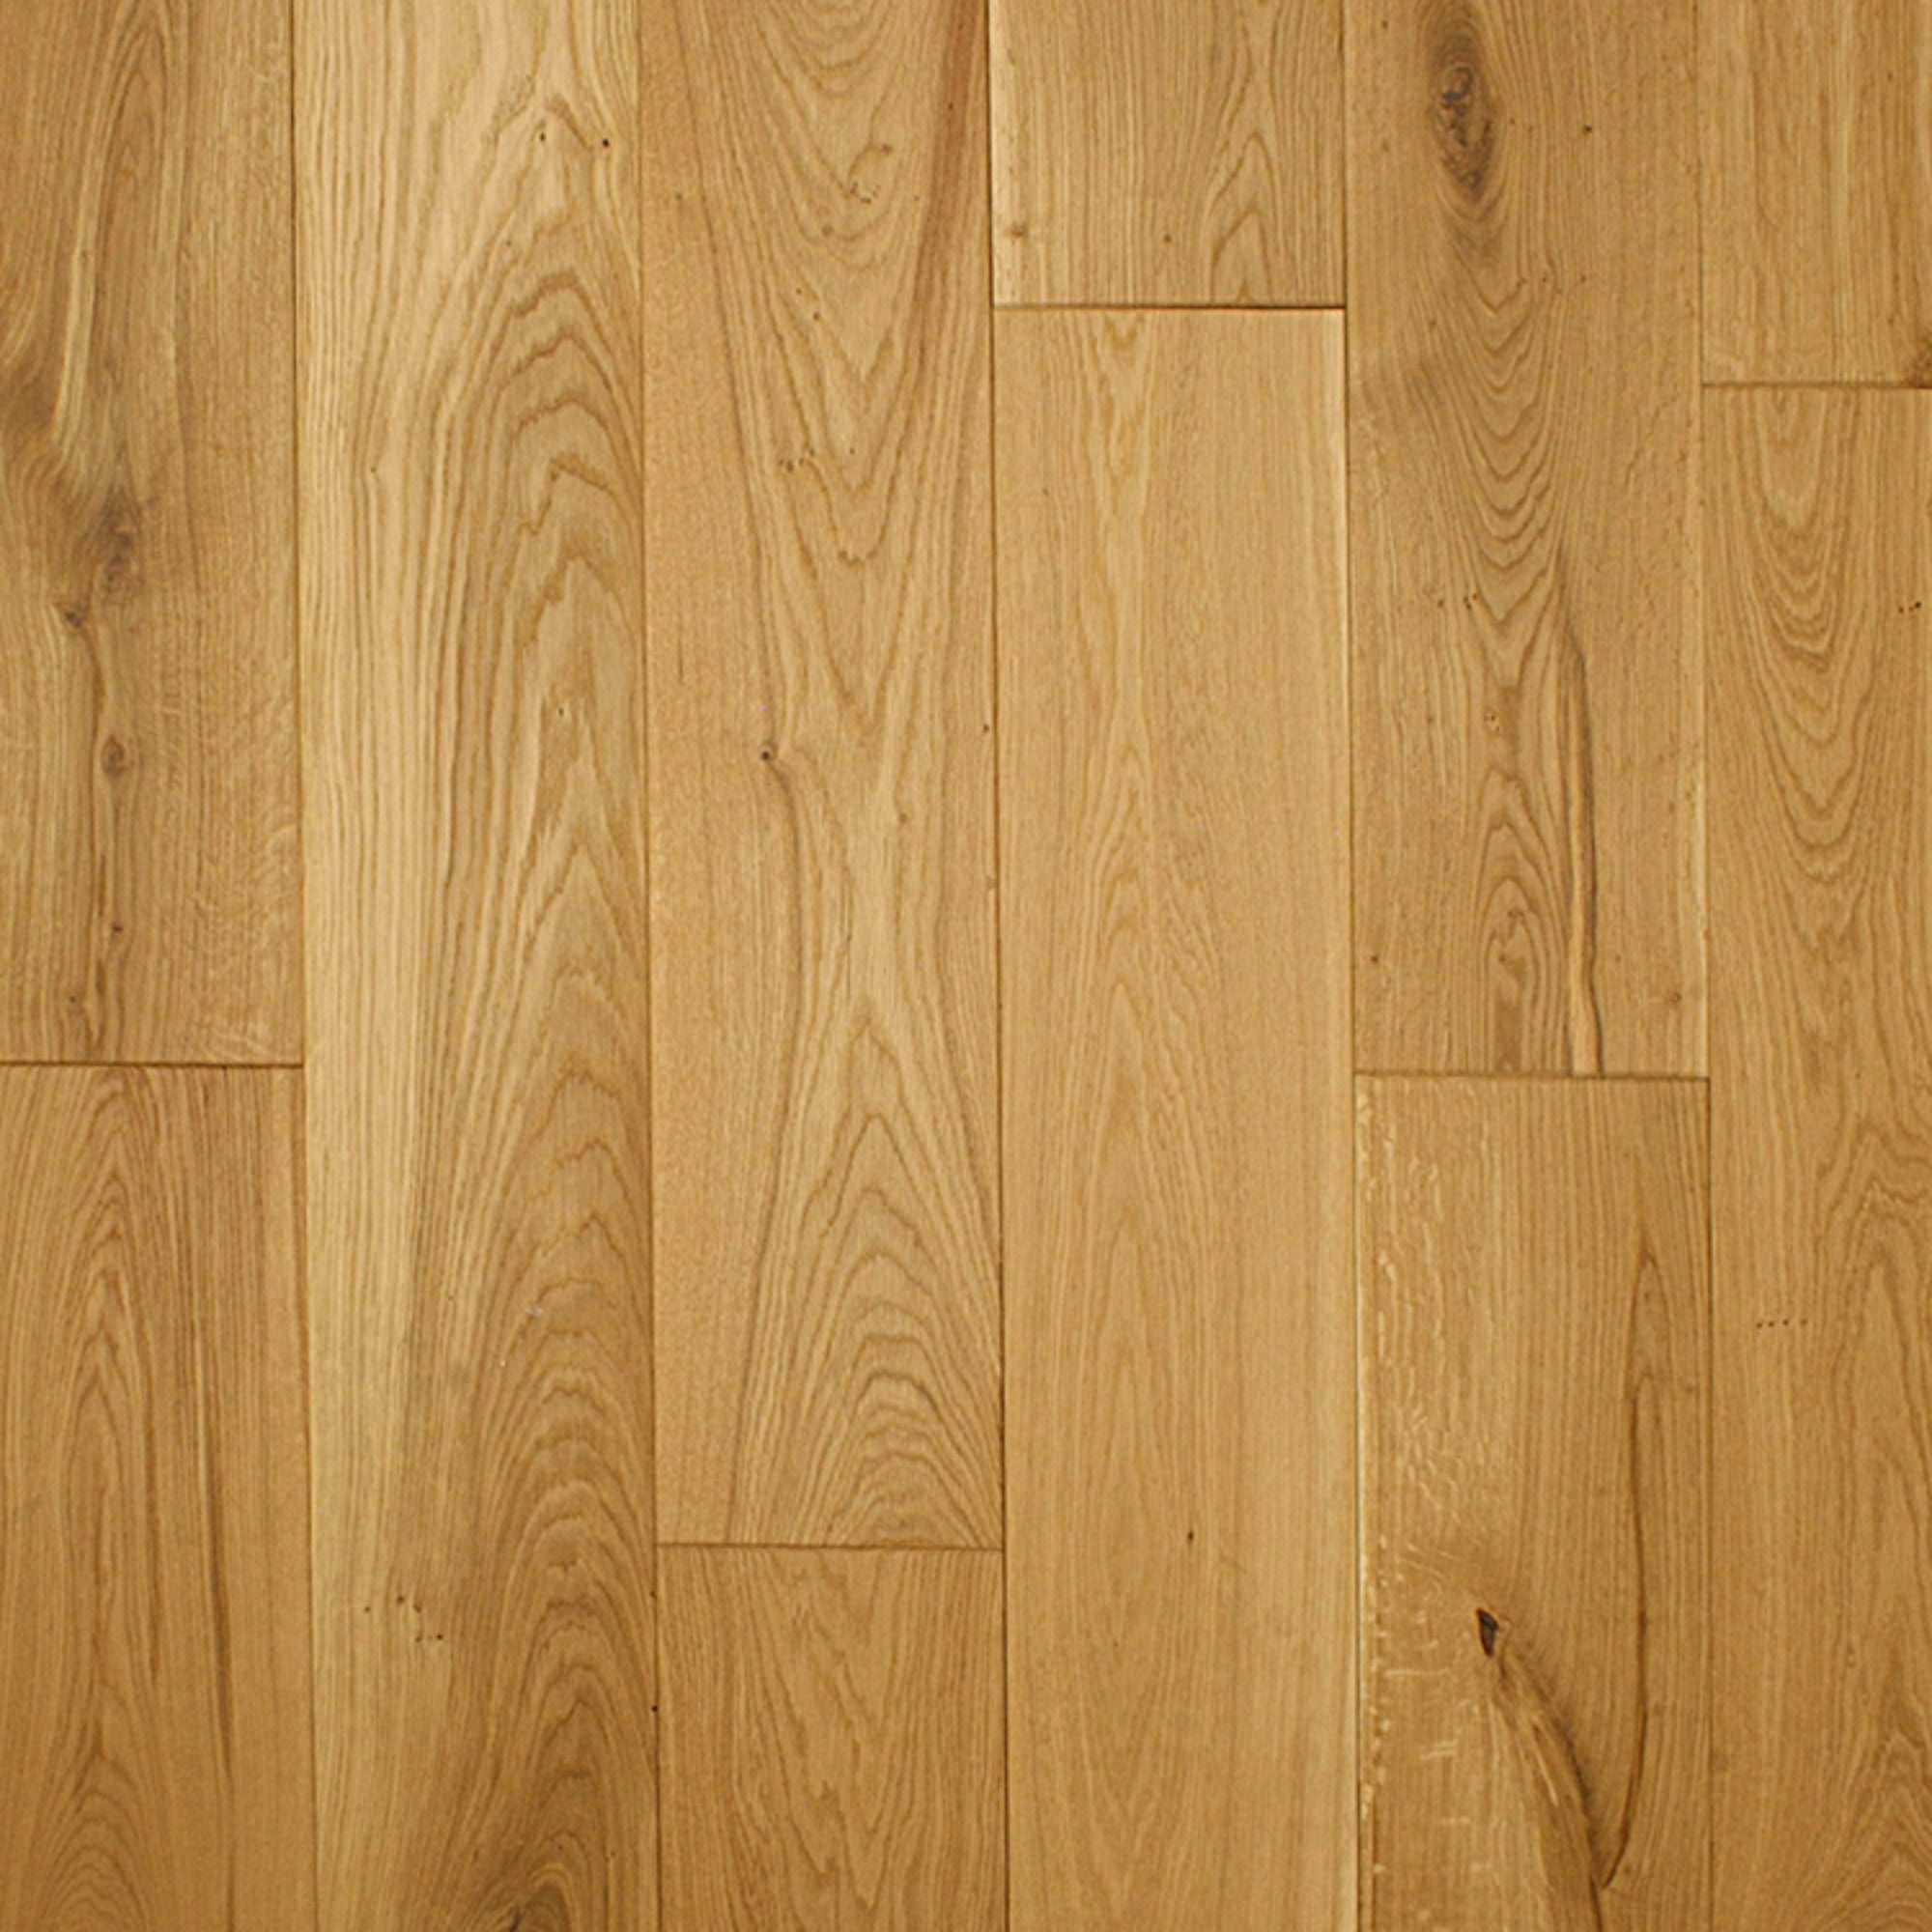 Wood flooring european 20x180mm brushed oiled solid oak for Solid oak wood flooring